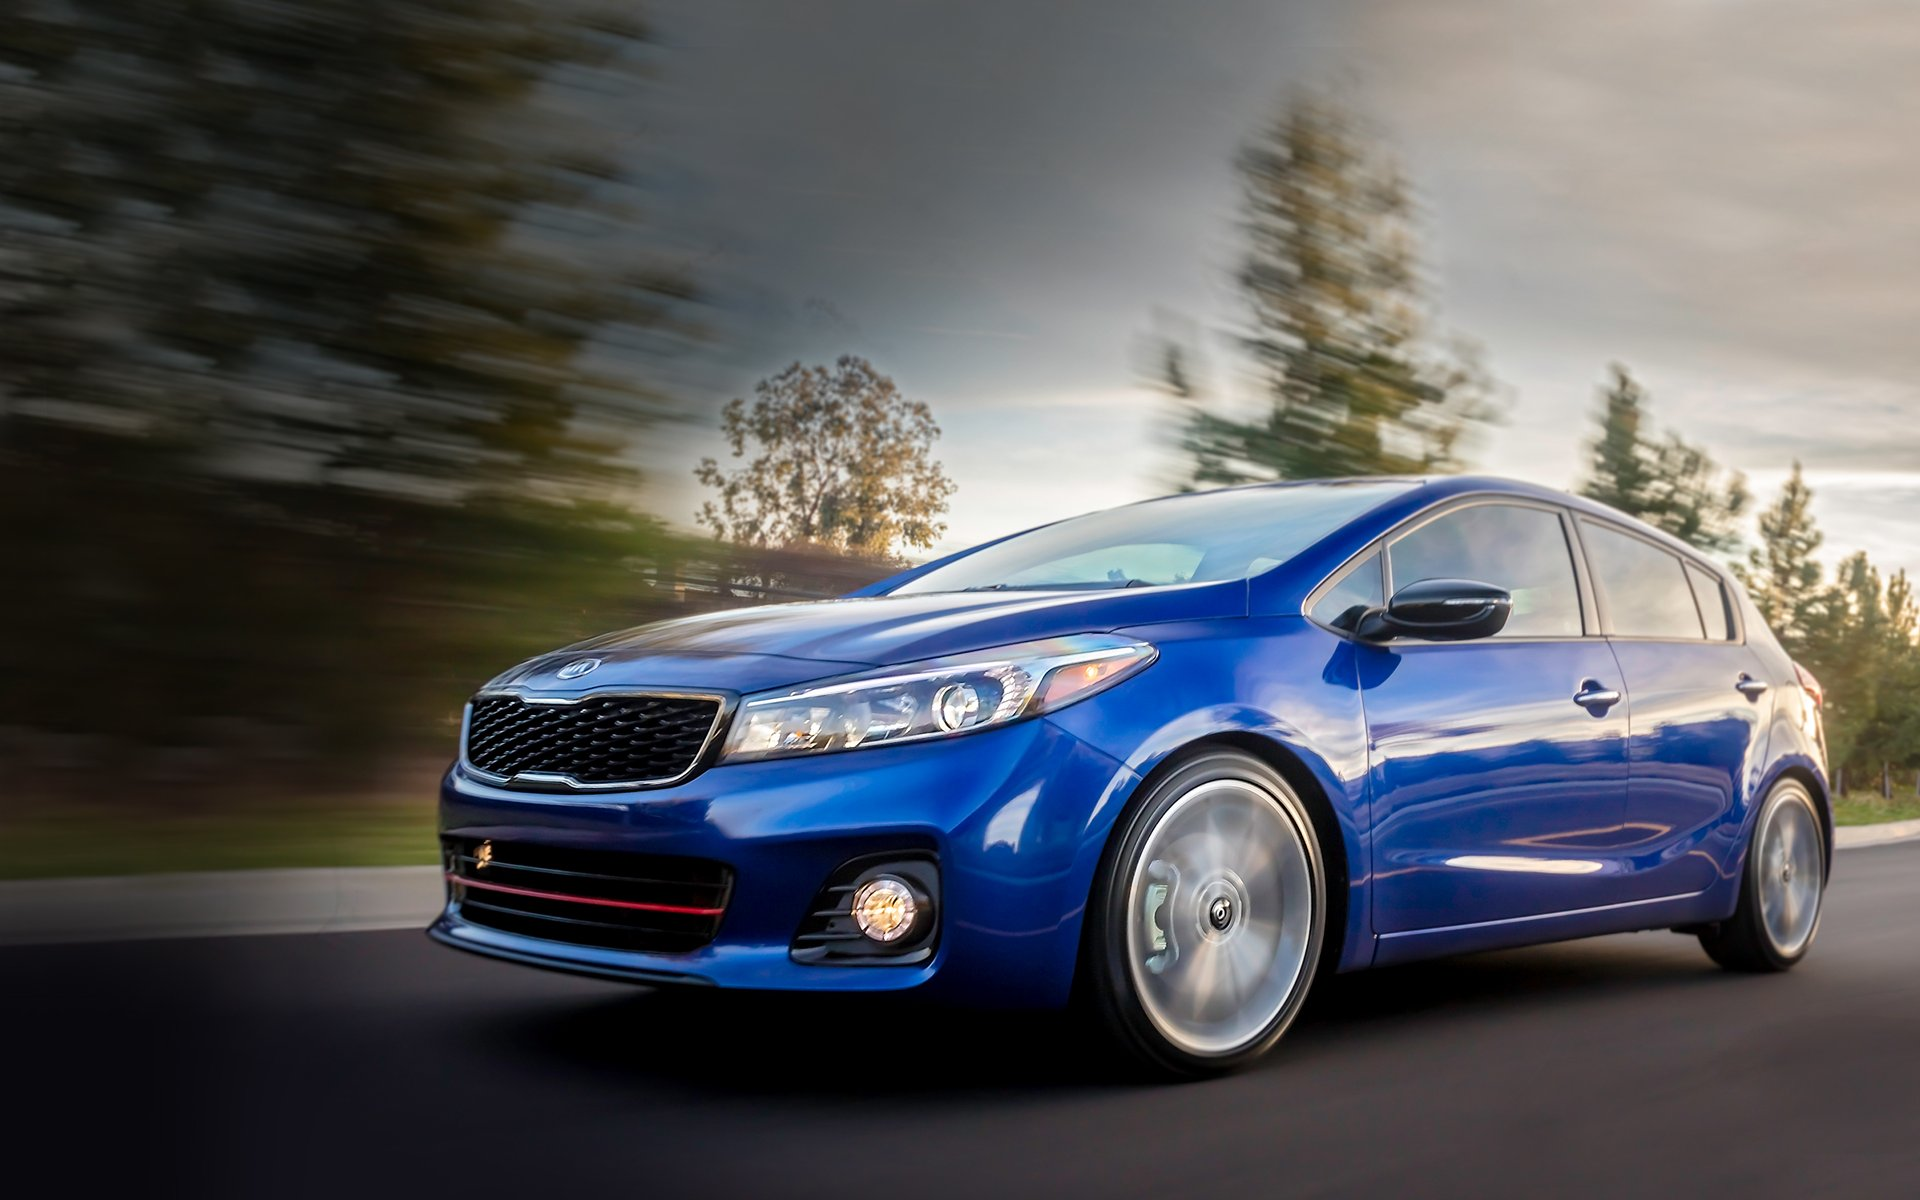 sale lease performance burton turbo oh incentives kia forte new for prices offers finance